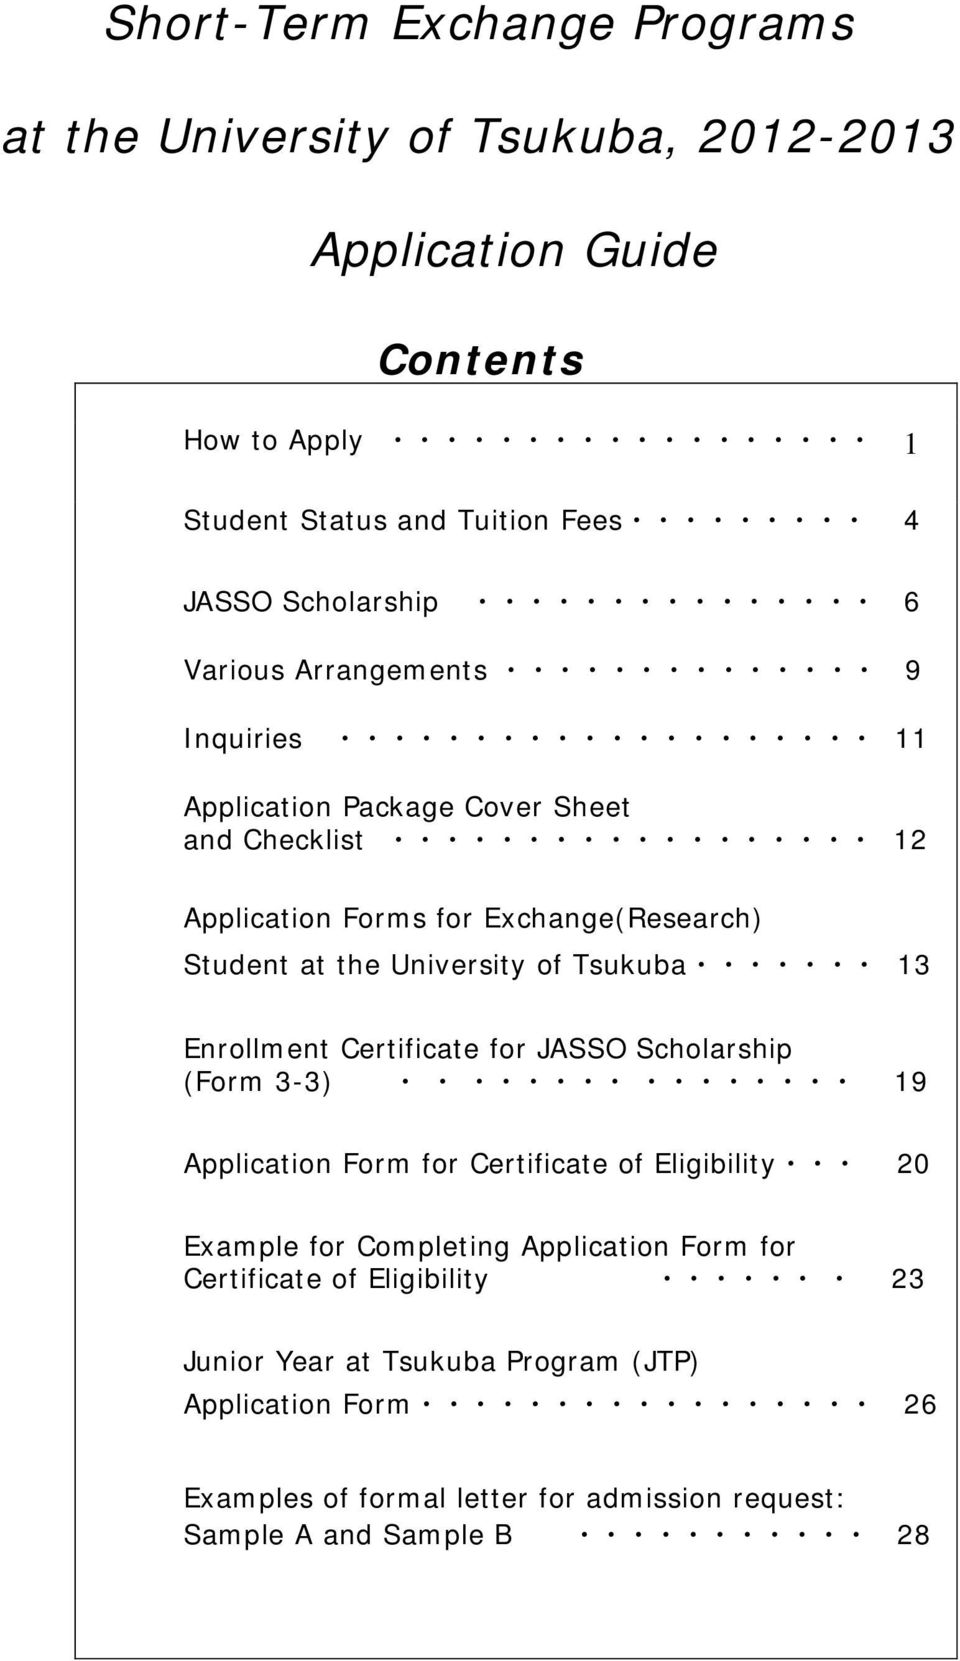 University of Tsukuba 13 Enrollment Certificate for JASSO Scholarship (Form 3-3) 19 Application Form for Certificate of Eligibility 20 Example for Completing